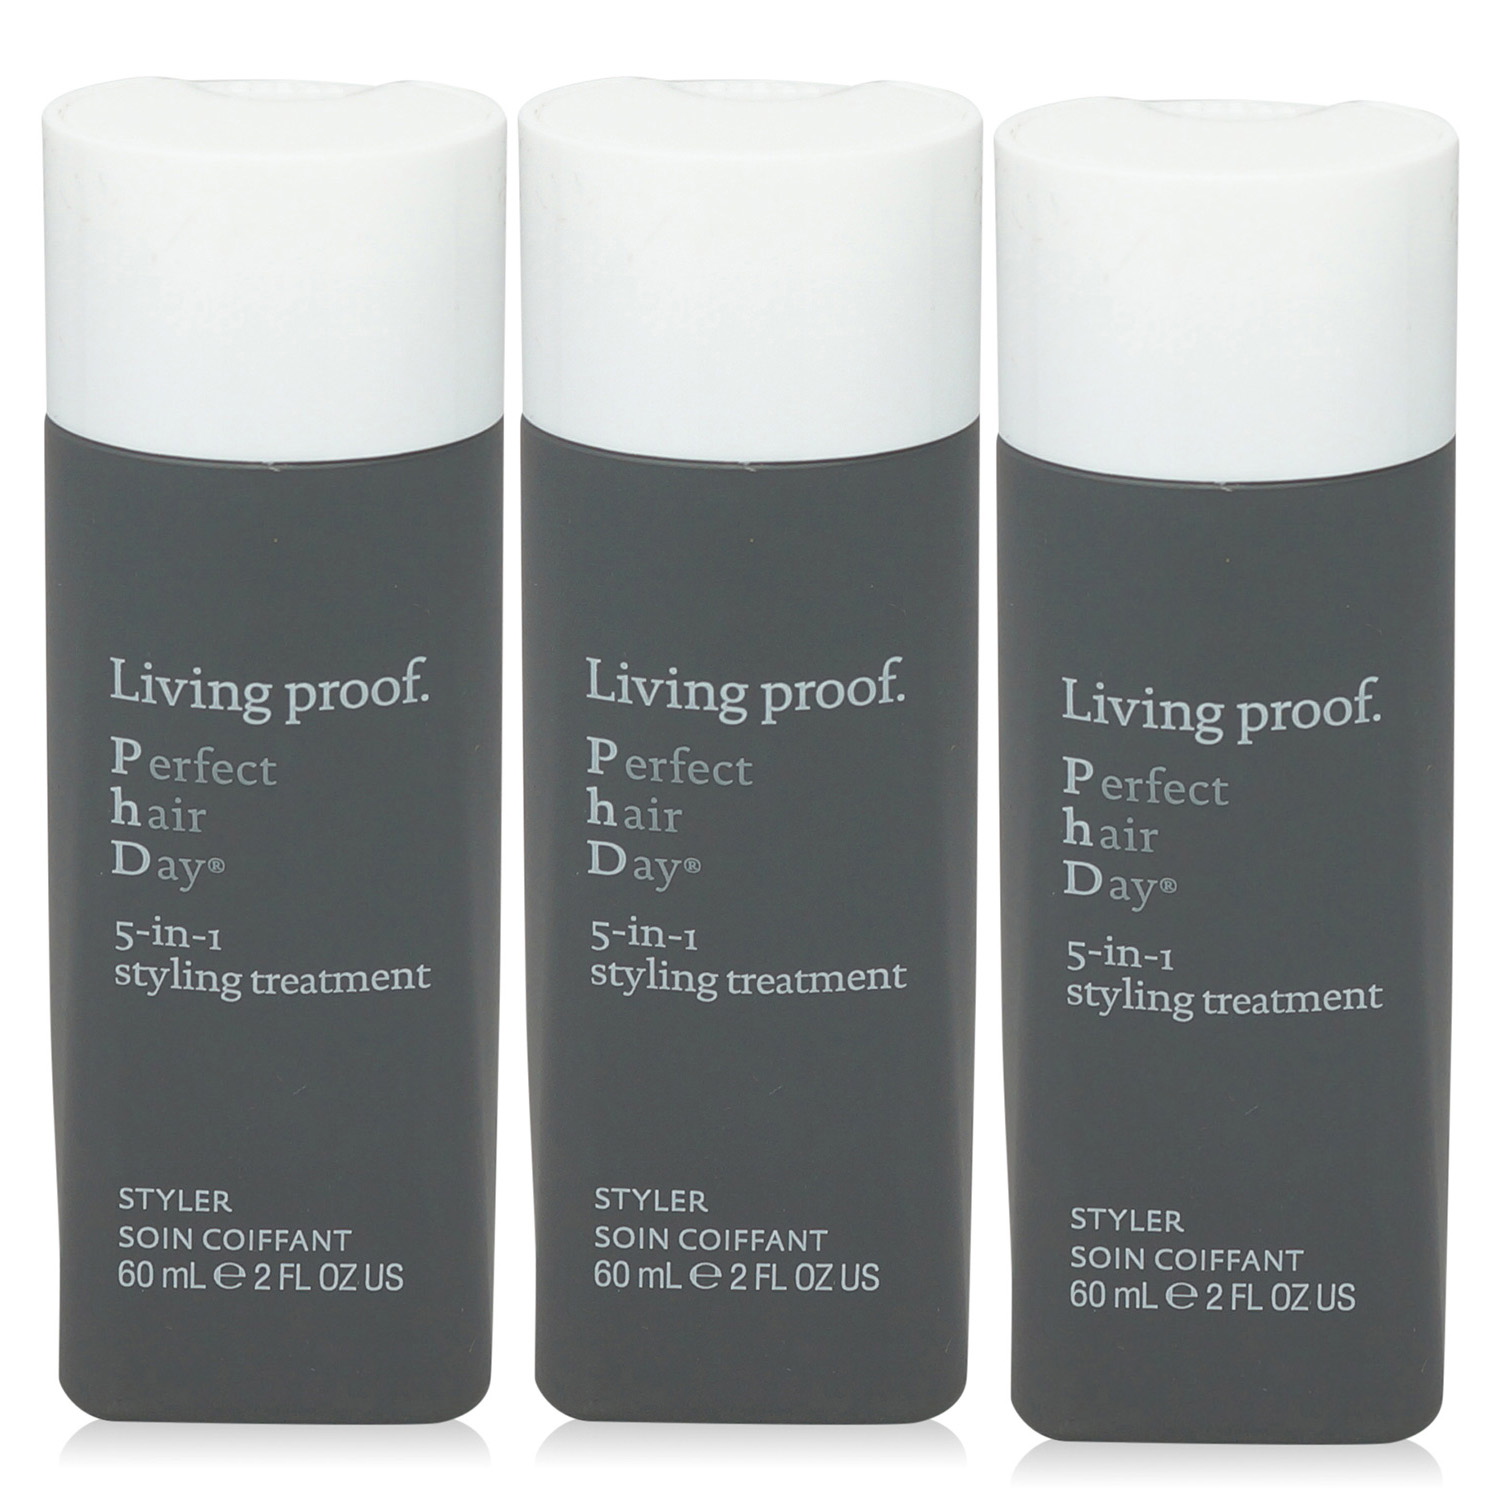 living proof hair day 5 in 1 styling treatment living proof hair day 5 in 1 style treatment 1786